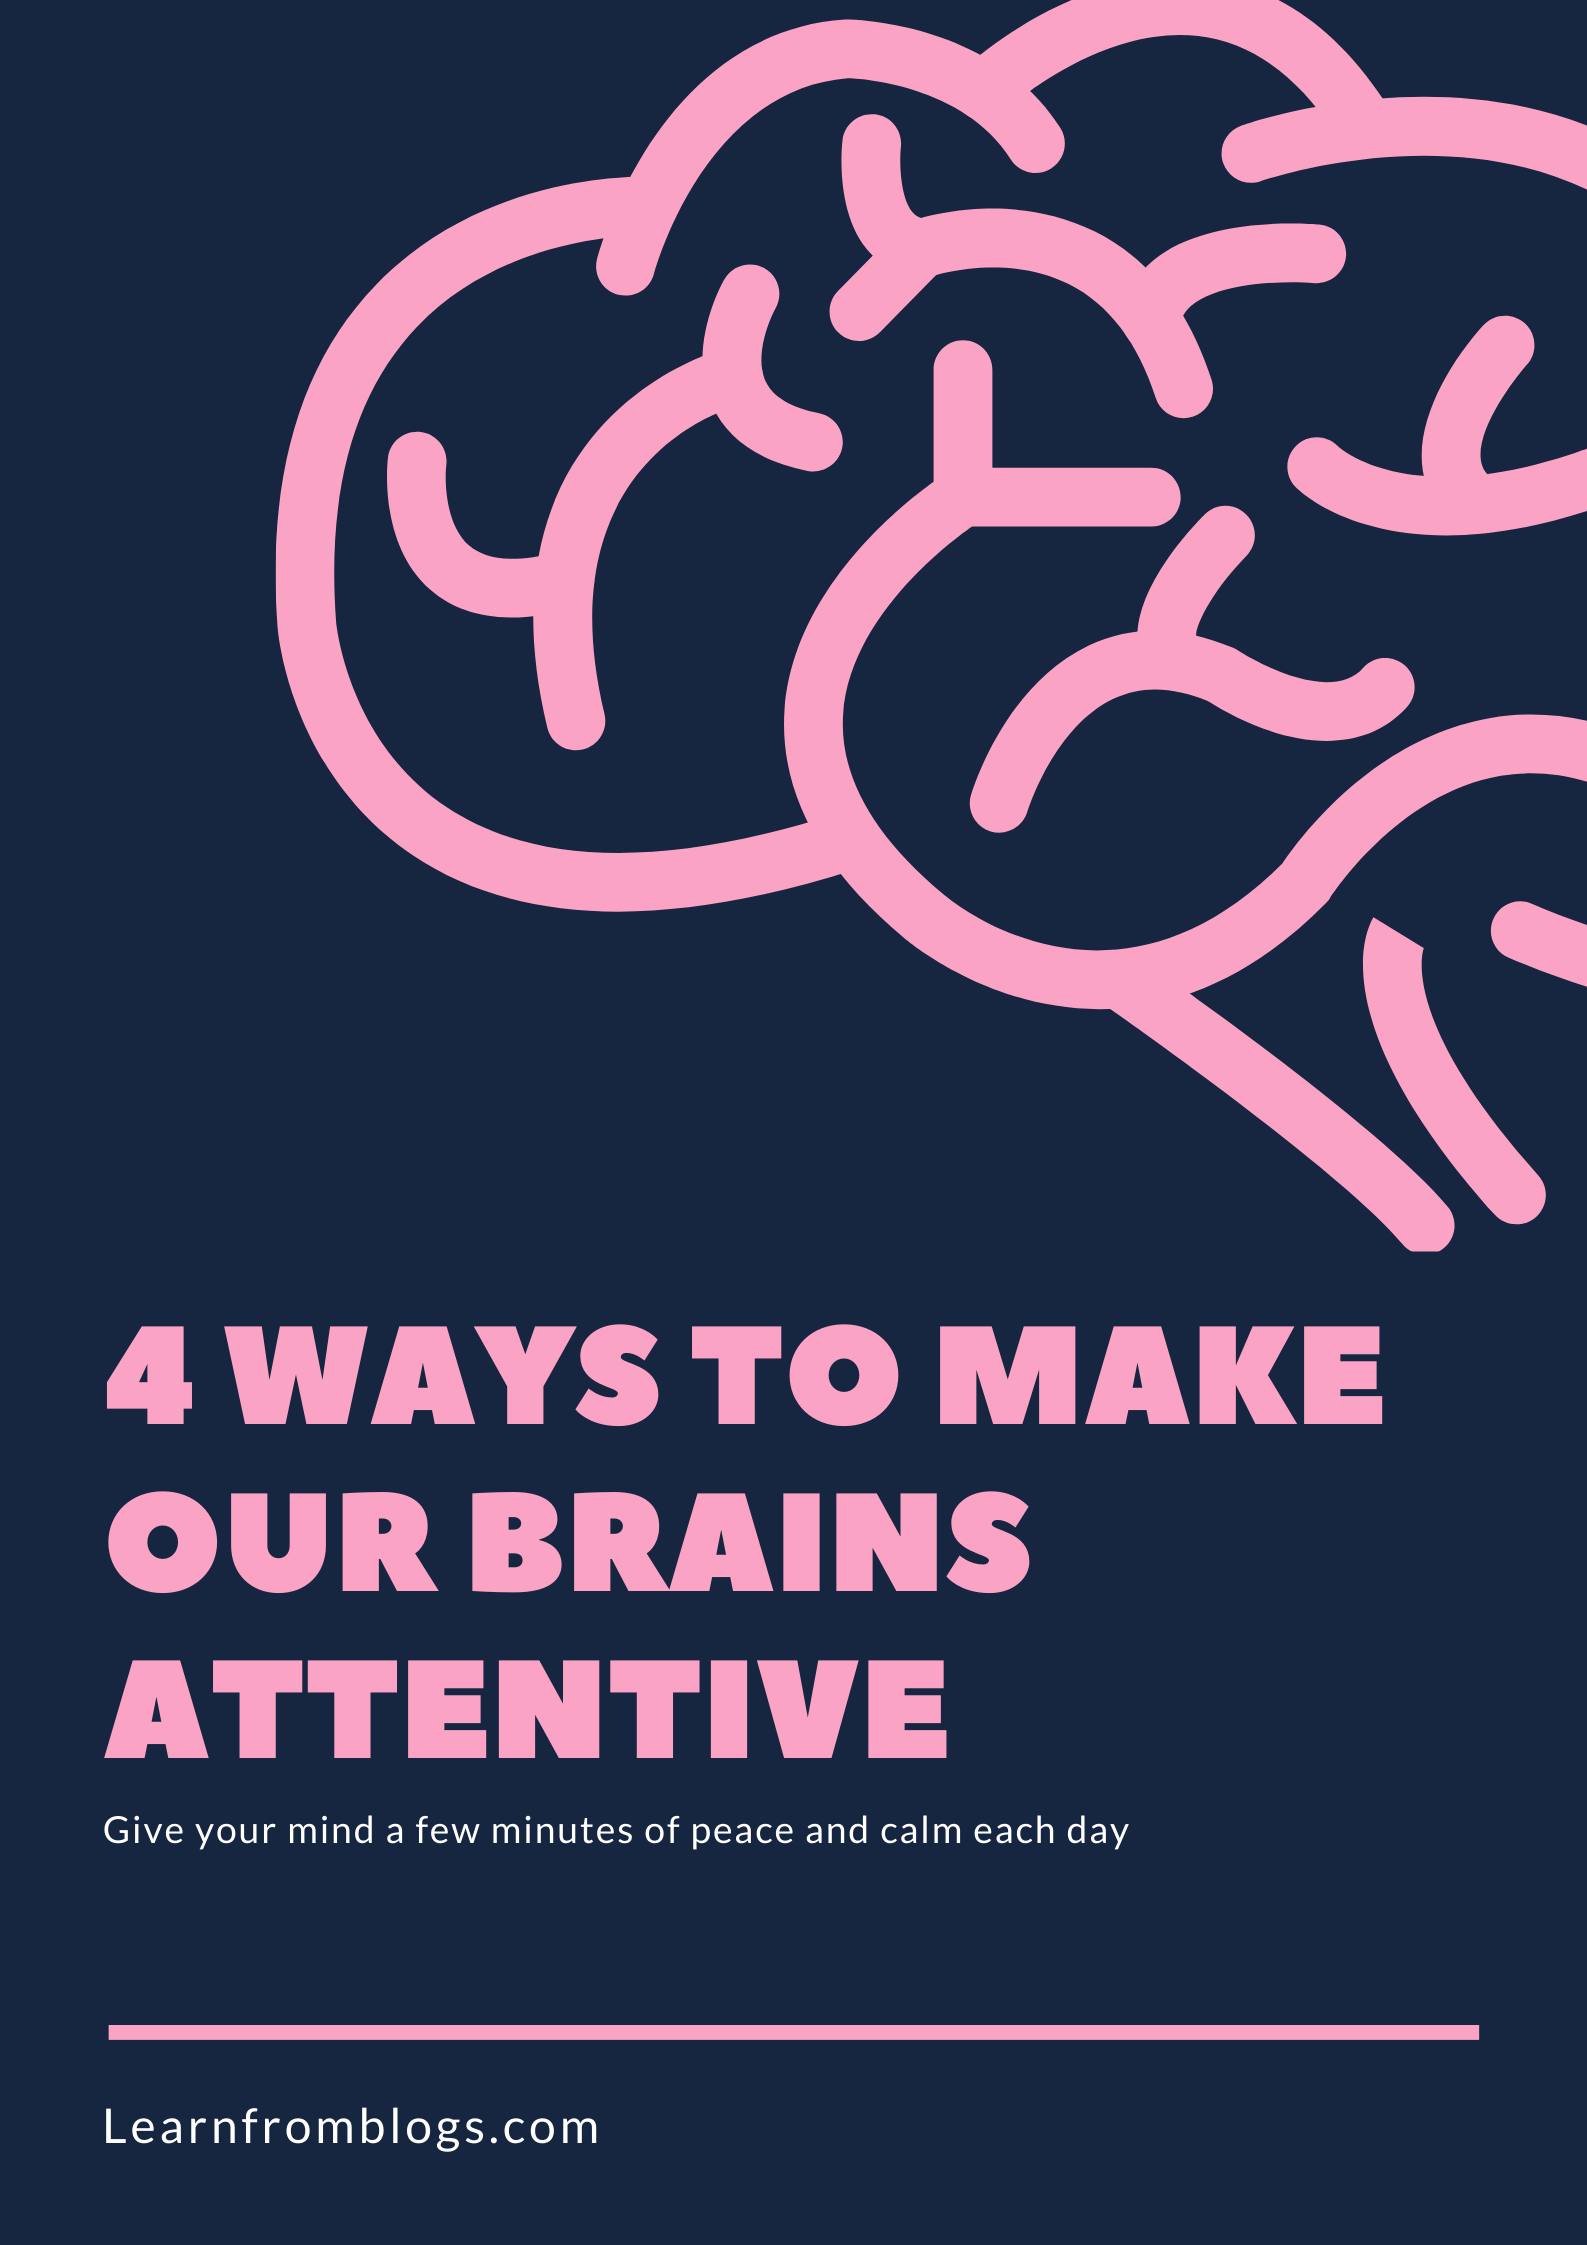 4 WAYS TO MAKE OUR BRAINS ATTENTIVE.png